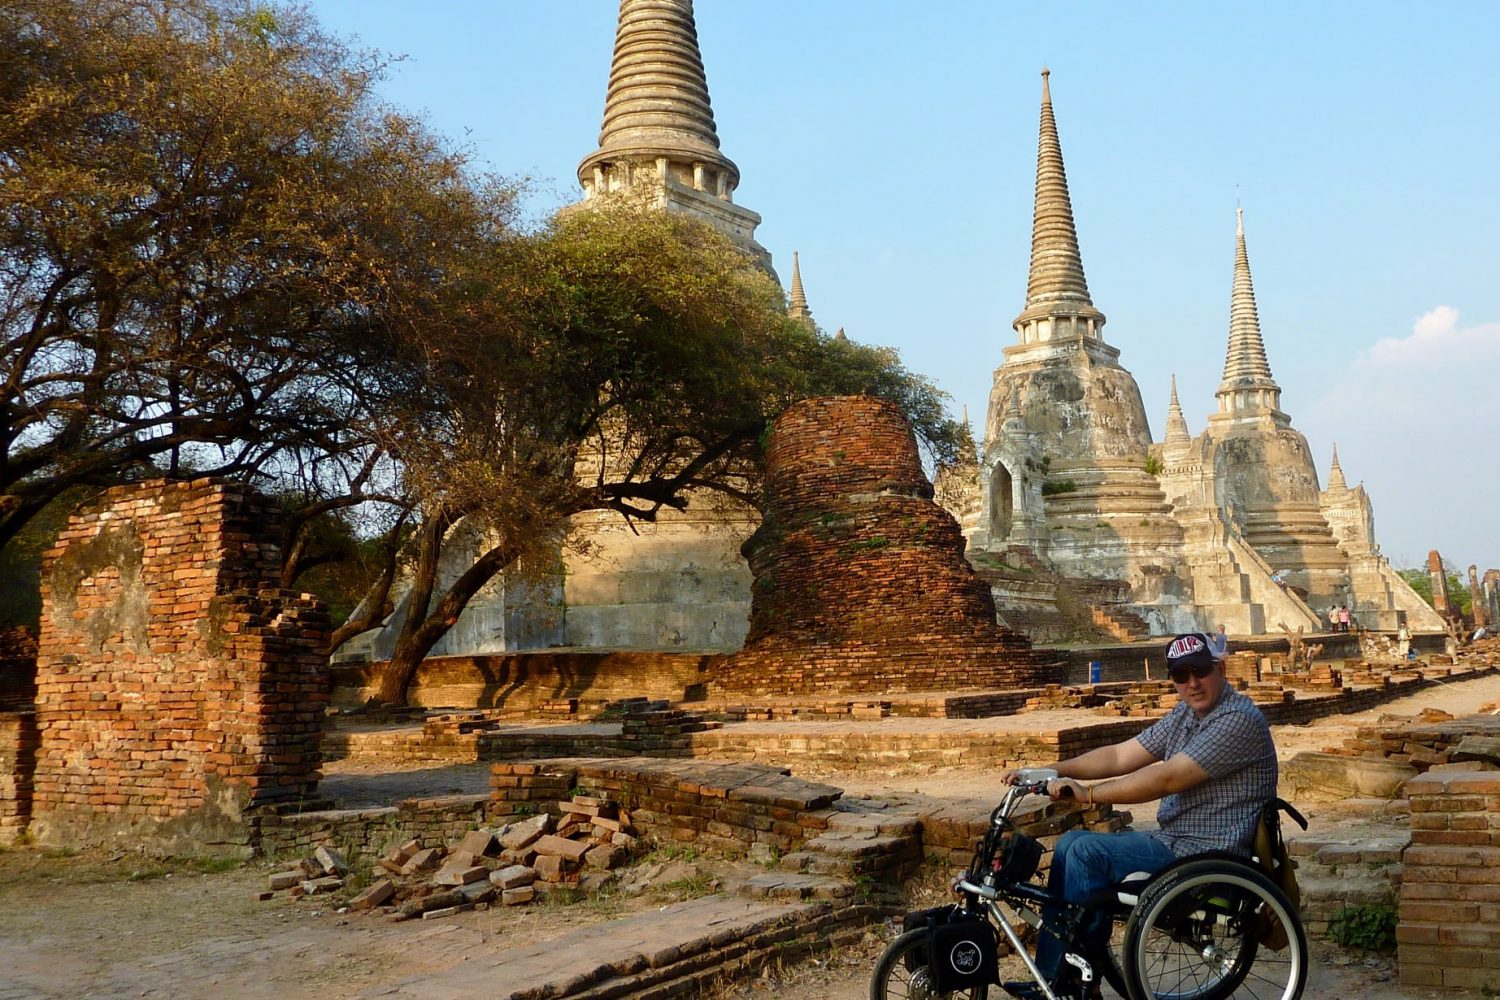 man in a wheelchair with electric triride wheel in front posing in front of conic shaped golden temple buildings